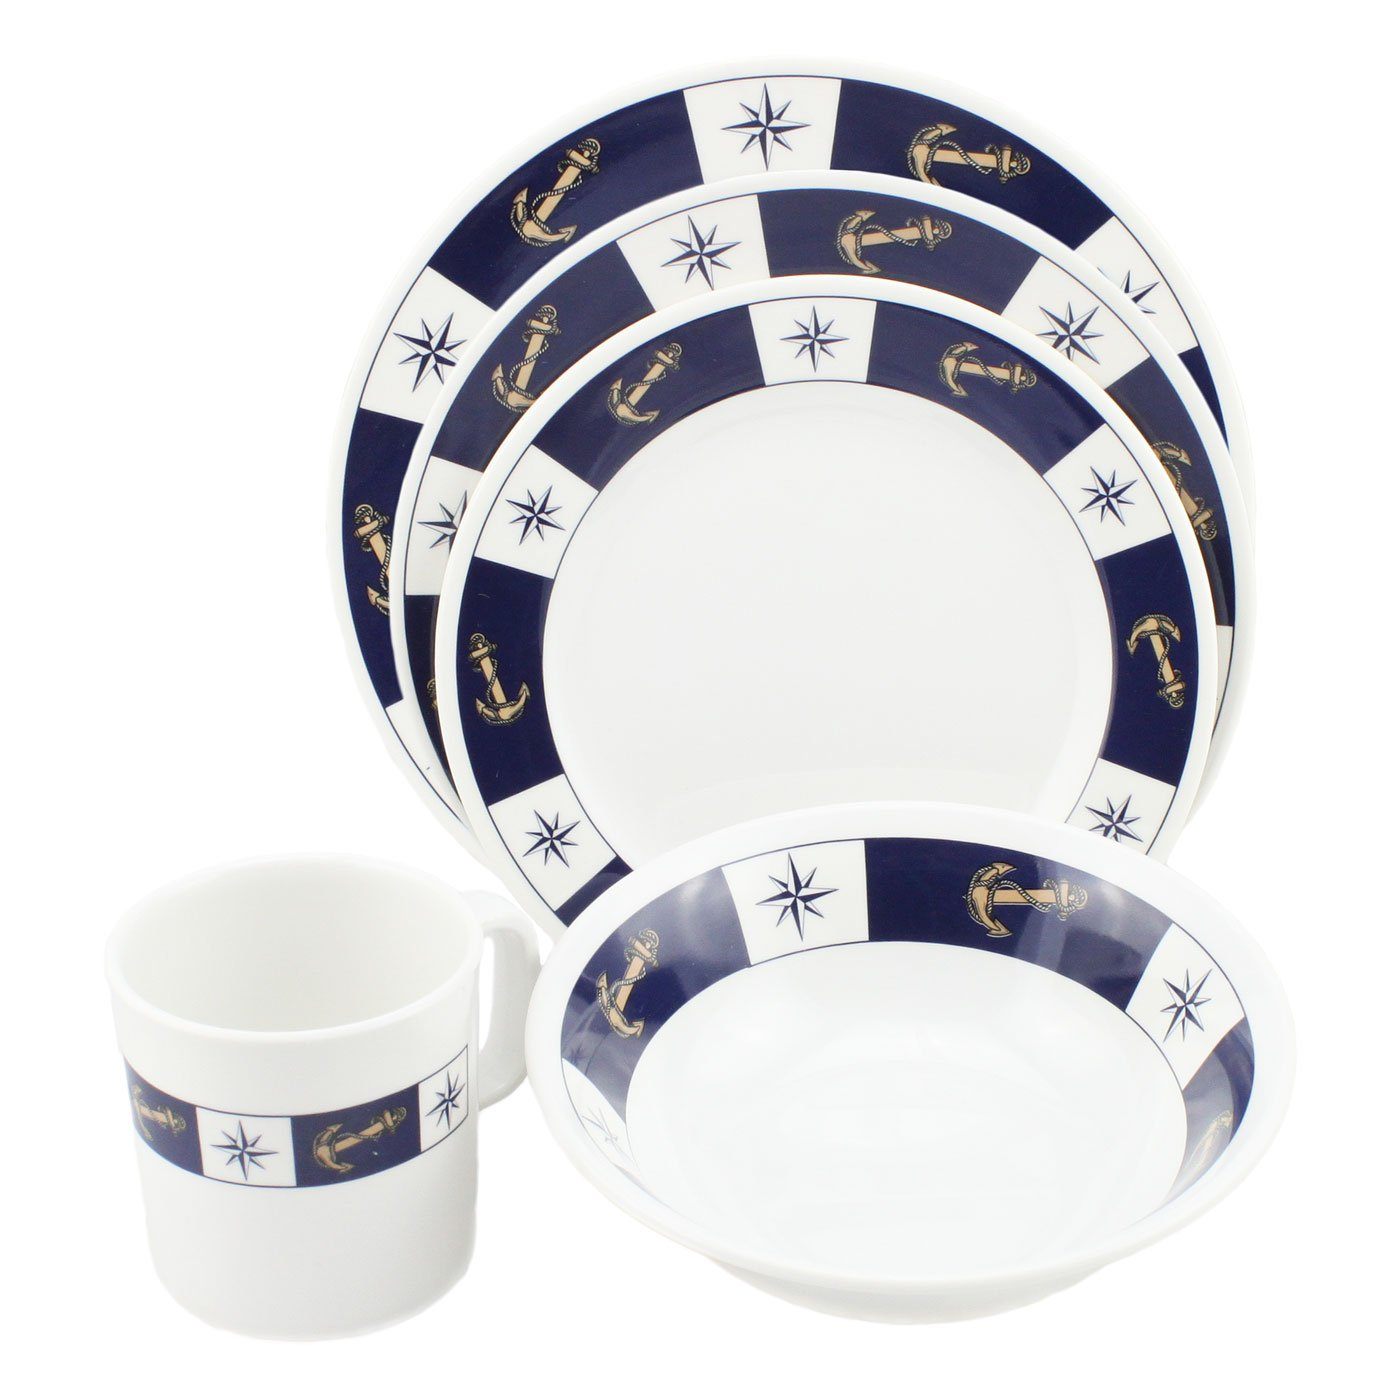 Amazon.com | Norestar Melamine Galleyware Nautical Boat Dish Set Bowls Plates Mugs (20-piece) Anchor/Compass Theme - Perfect Gift for Boater Boating ...  sc 1 st  Amazon.com & Amazon.com | Norestar Melamine Galleyware Nautical Boat Dish Set ...